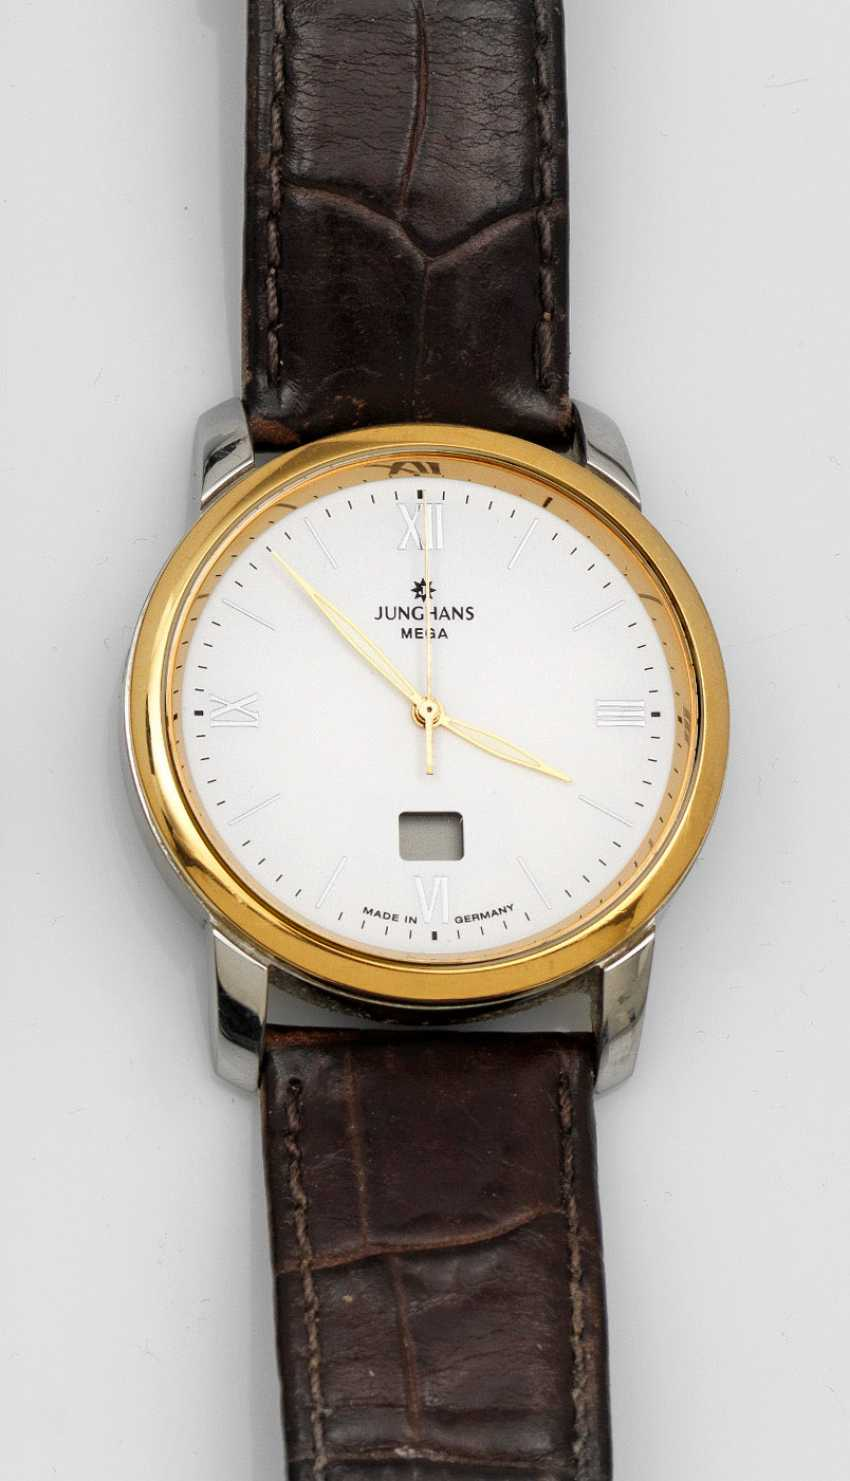 Wrist watch by Junghans - photo 1